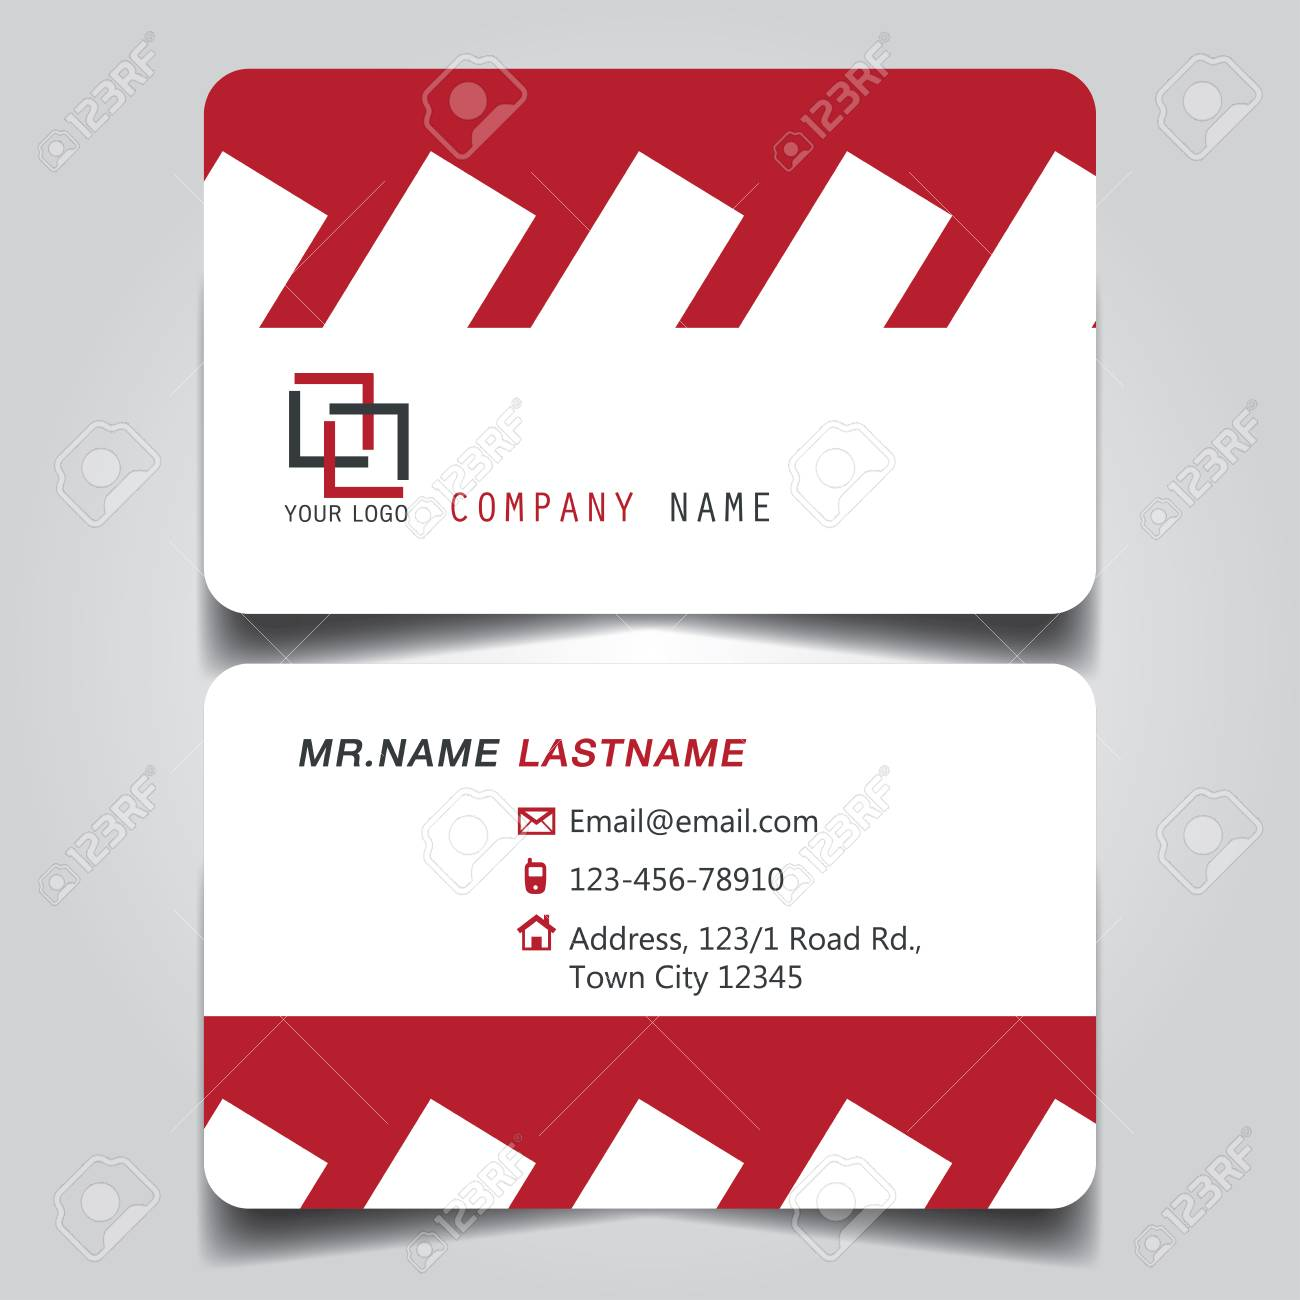 modern red and white name card and business card with creative